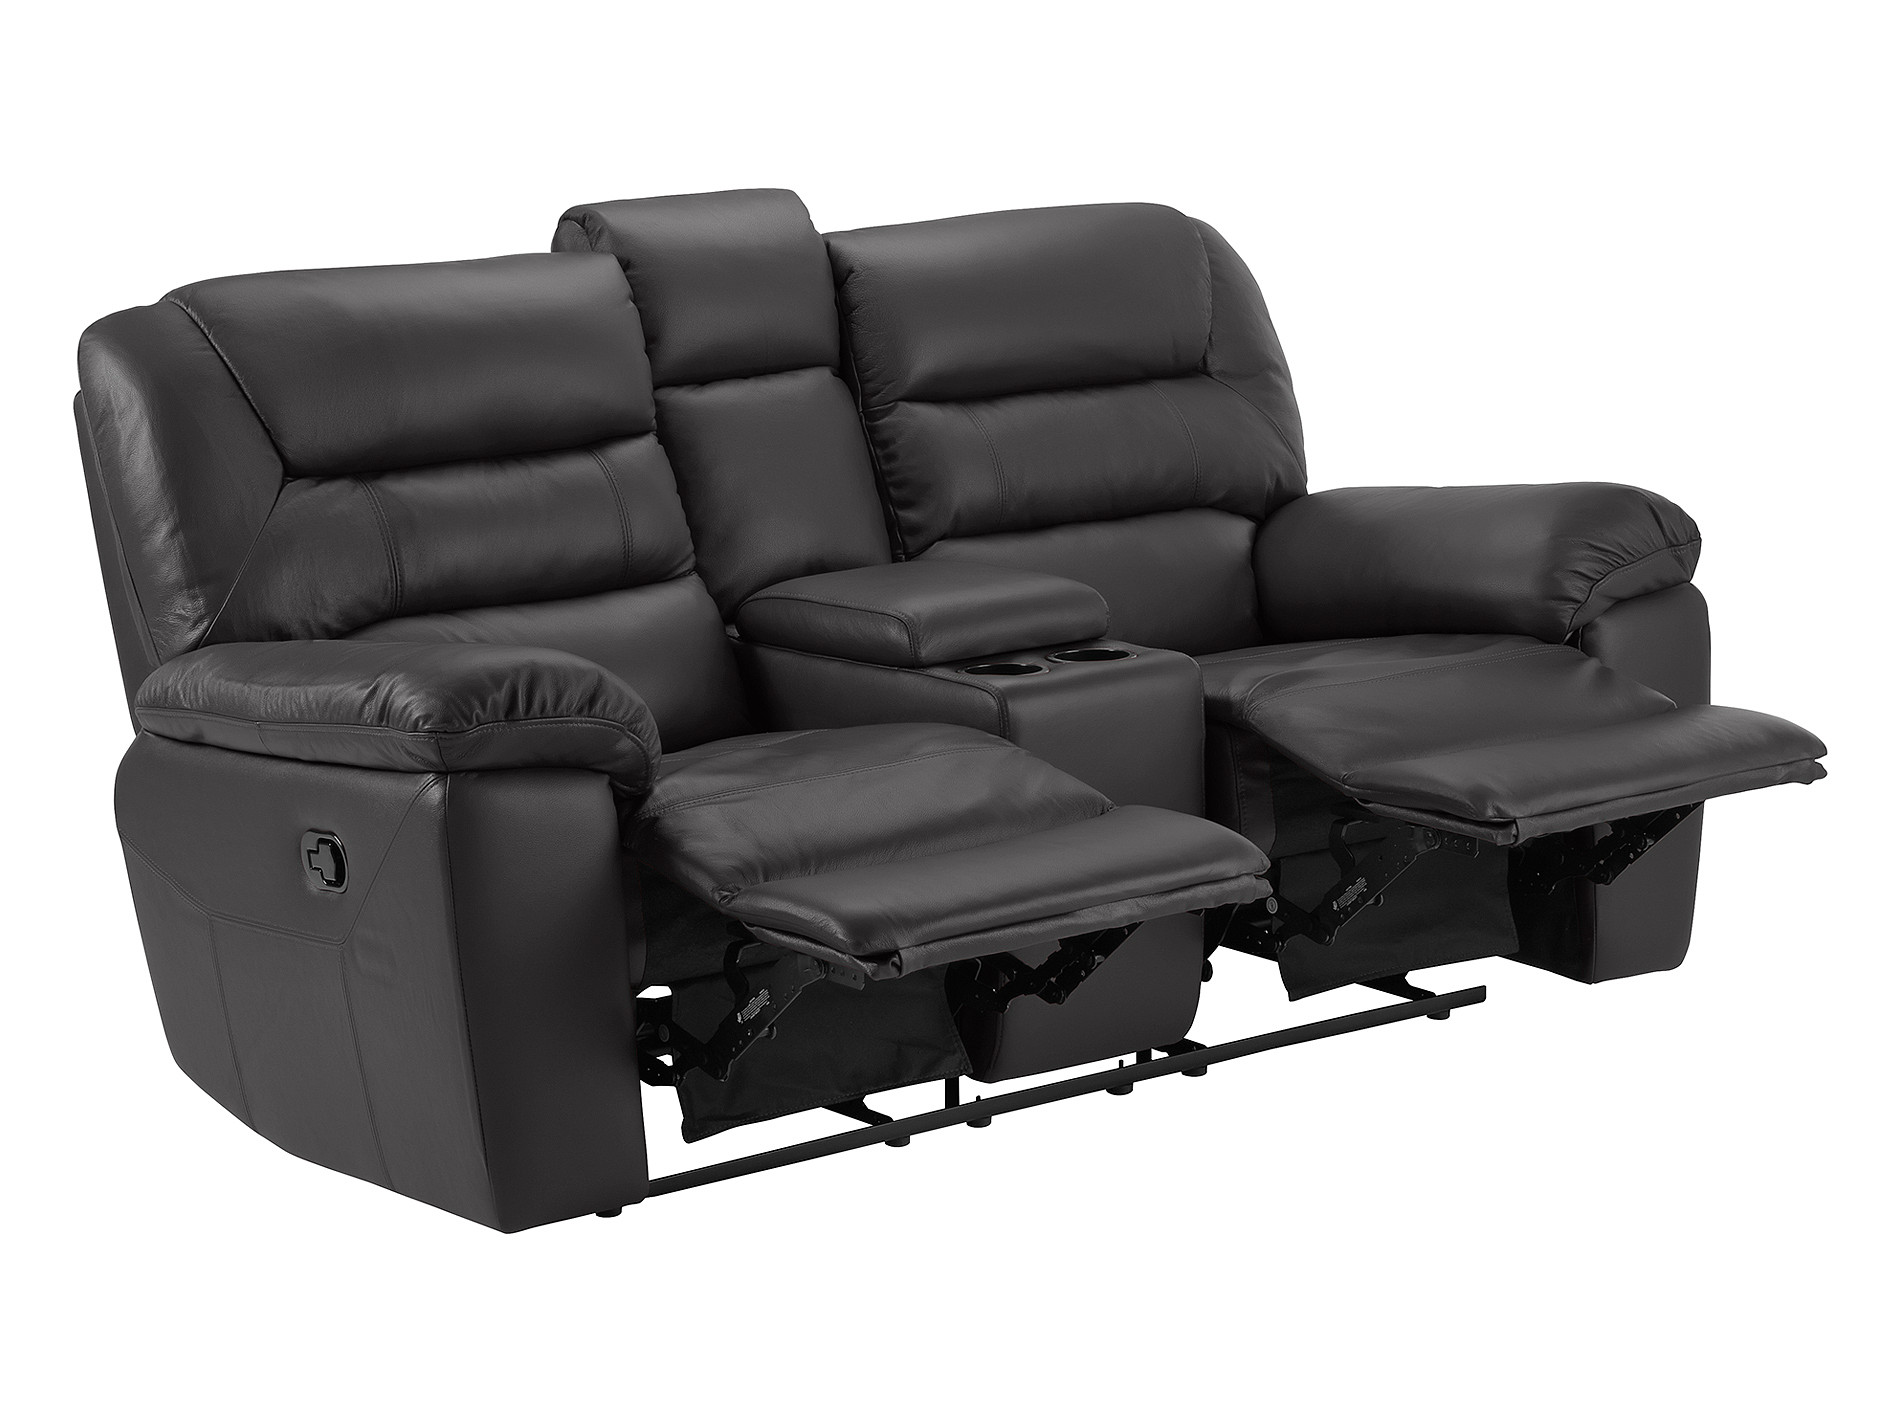 Devon Small Sofa With Manual Recliners Brown Leather